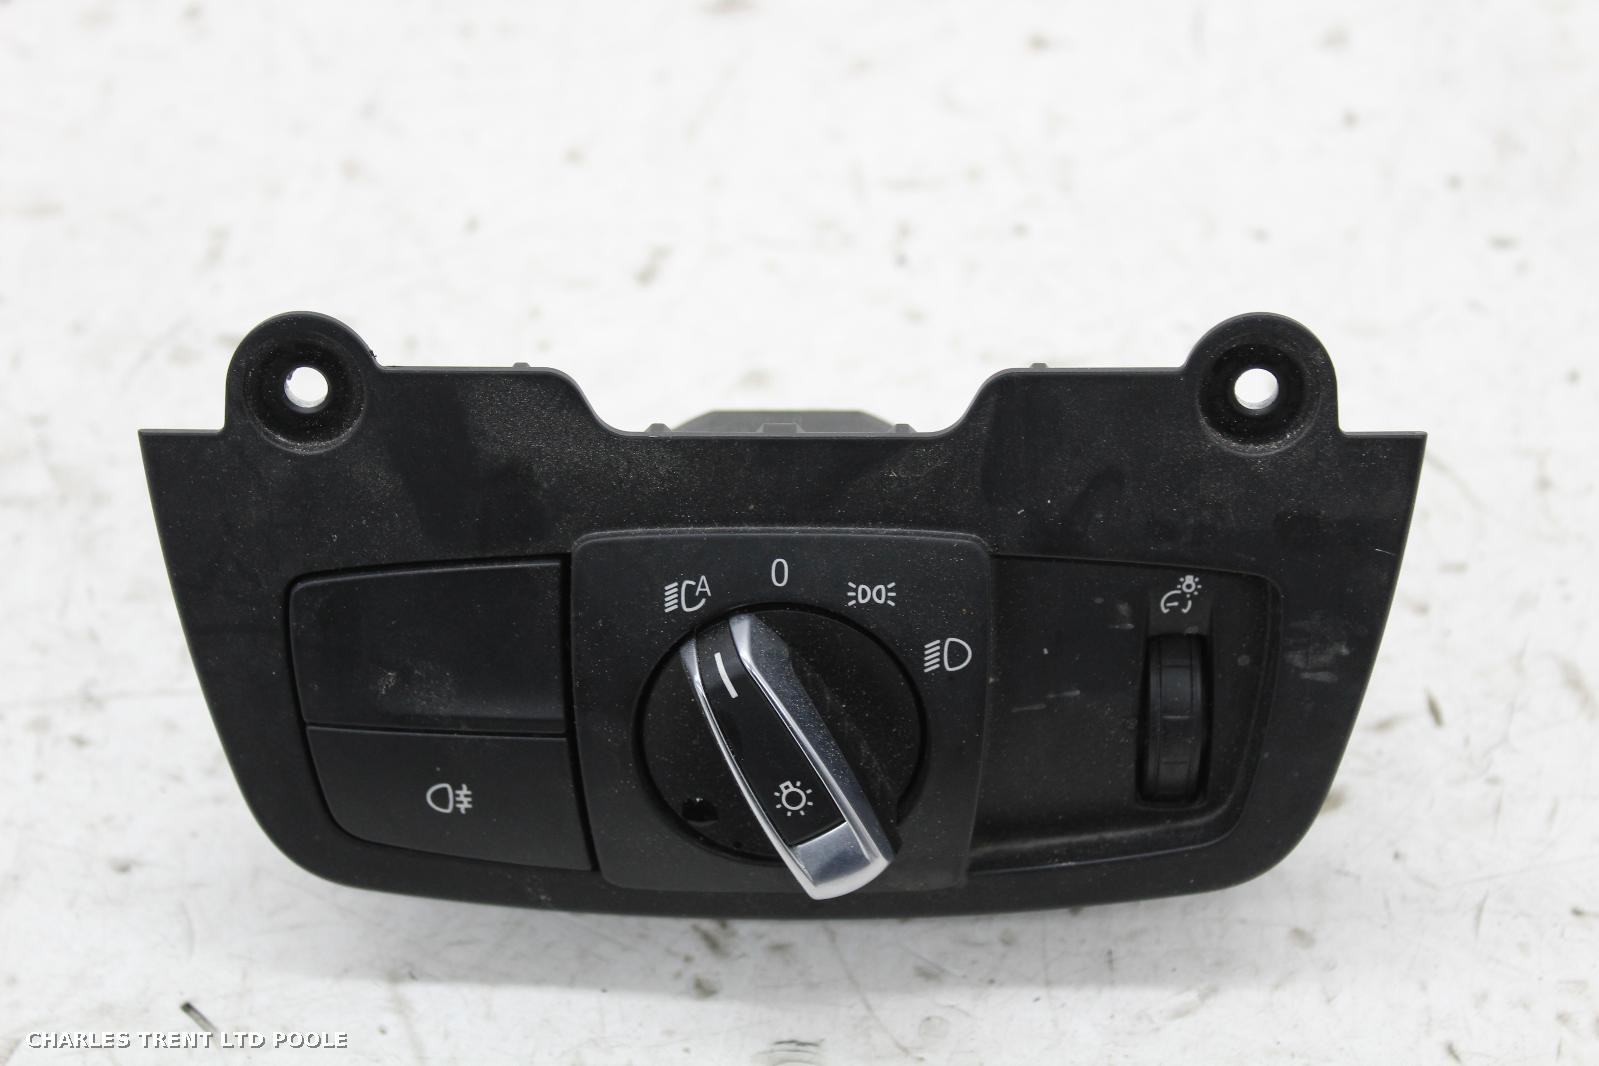 2014 - BMW - I8 - HEADLIGHT / HEADLAMP SWITCHES